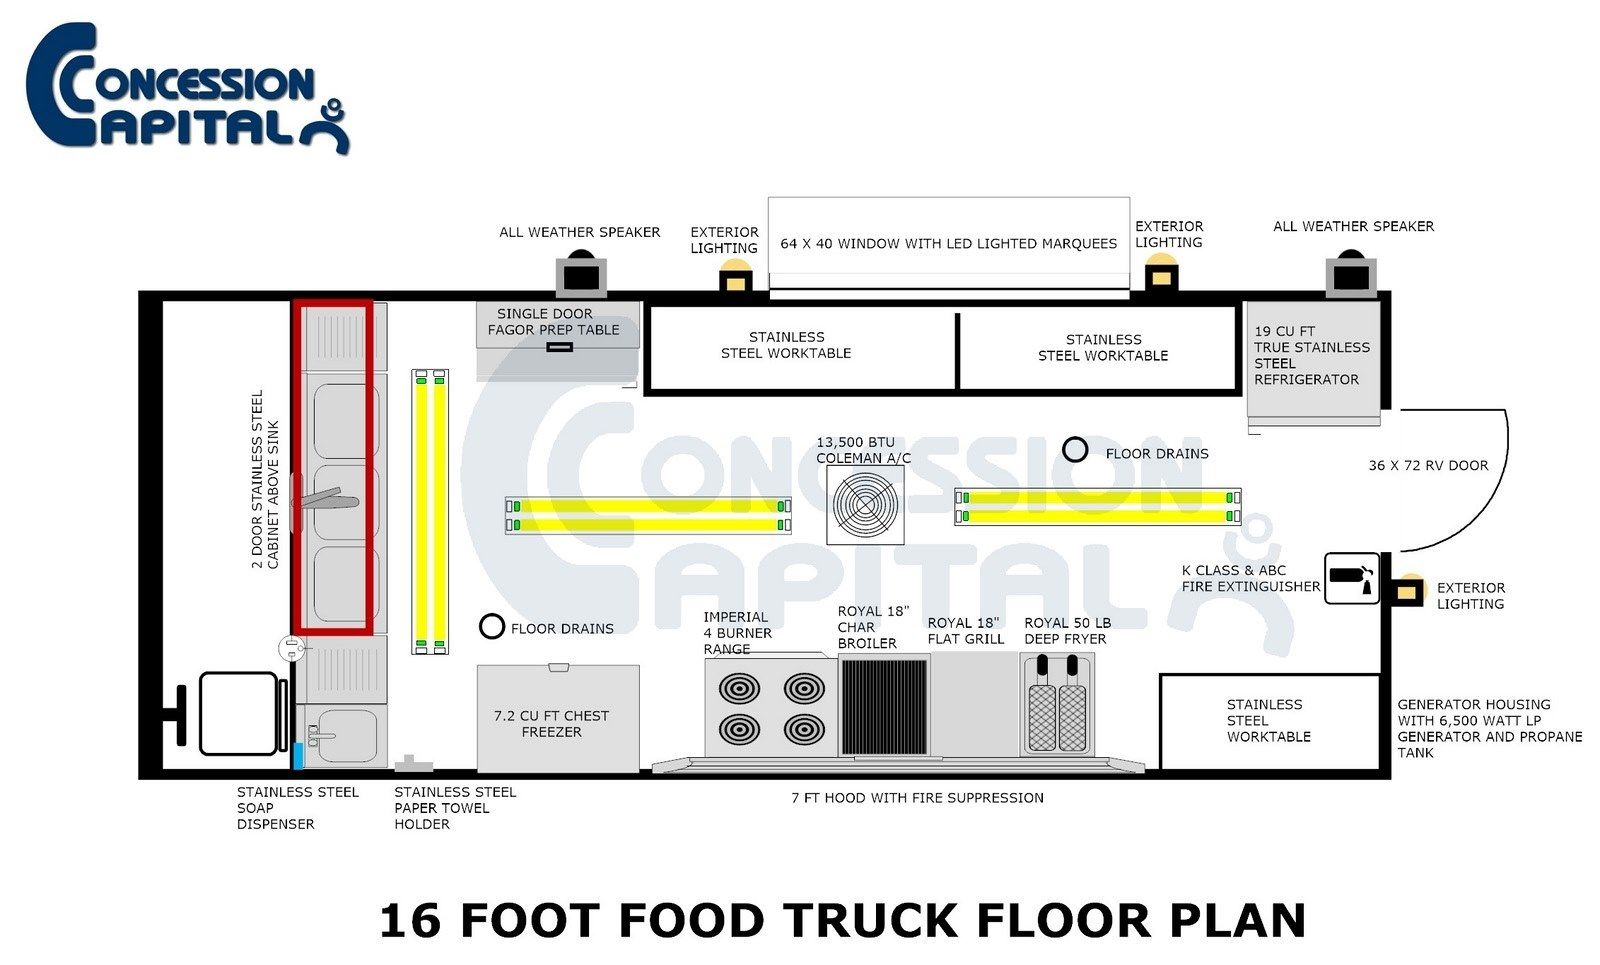 18 foot food truck floor plan step vans pinterest floor plans trucks and food truck. Black Bedroom Furniture Sets. Home Design Ideas